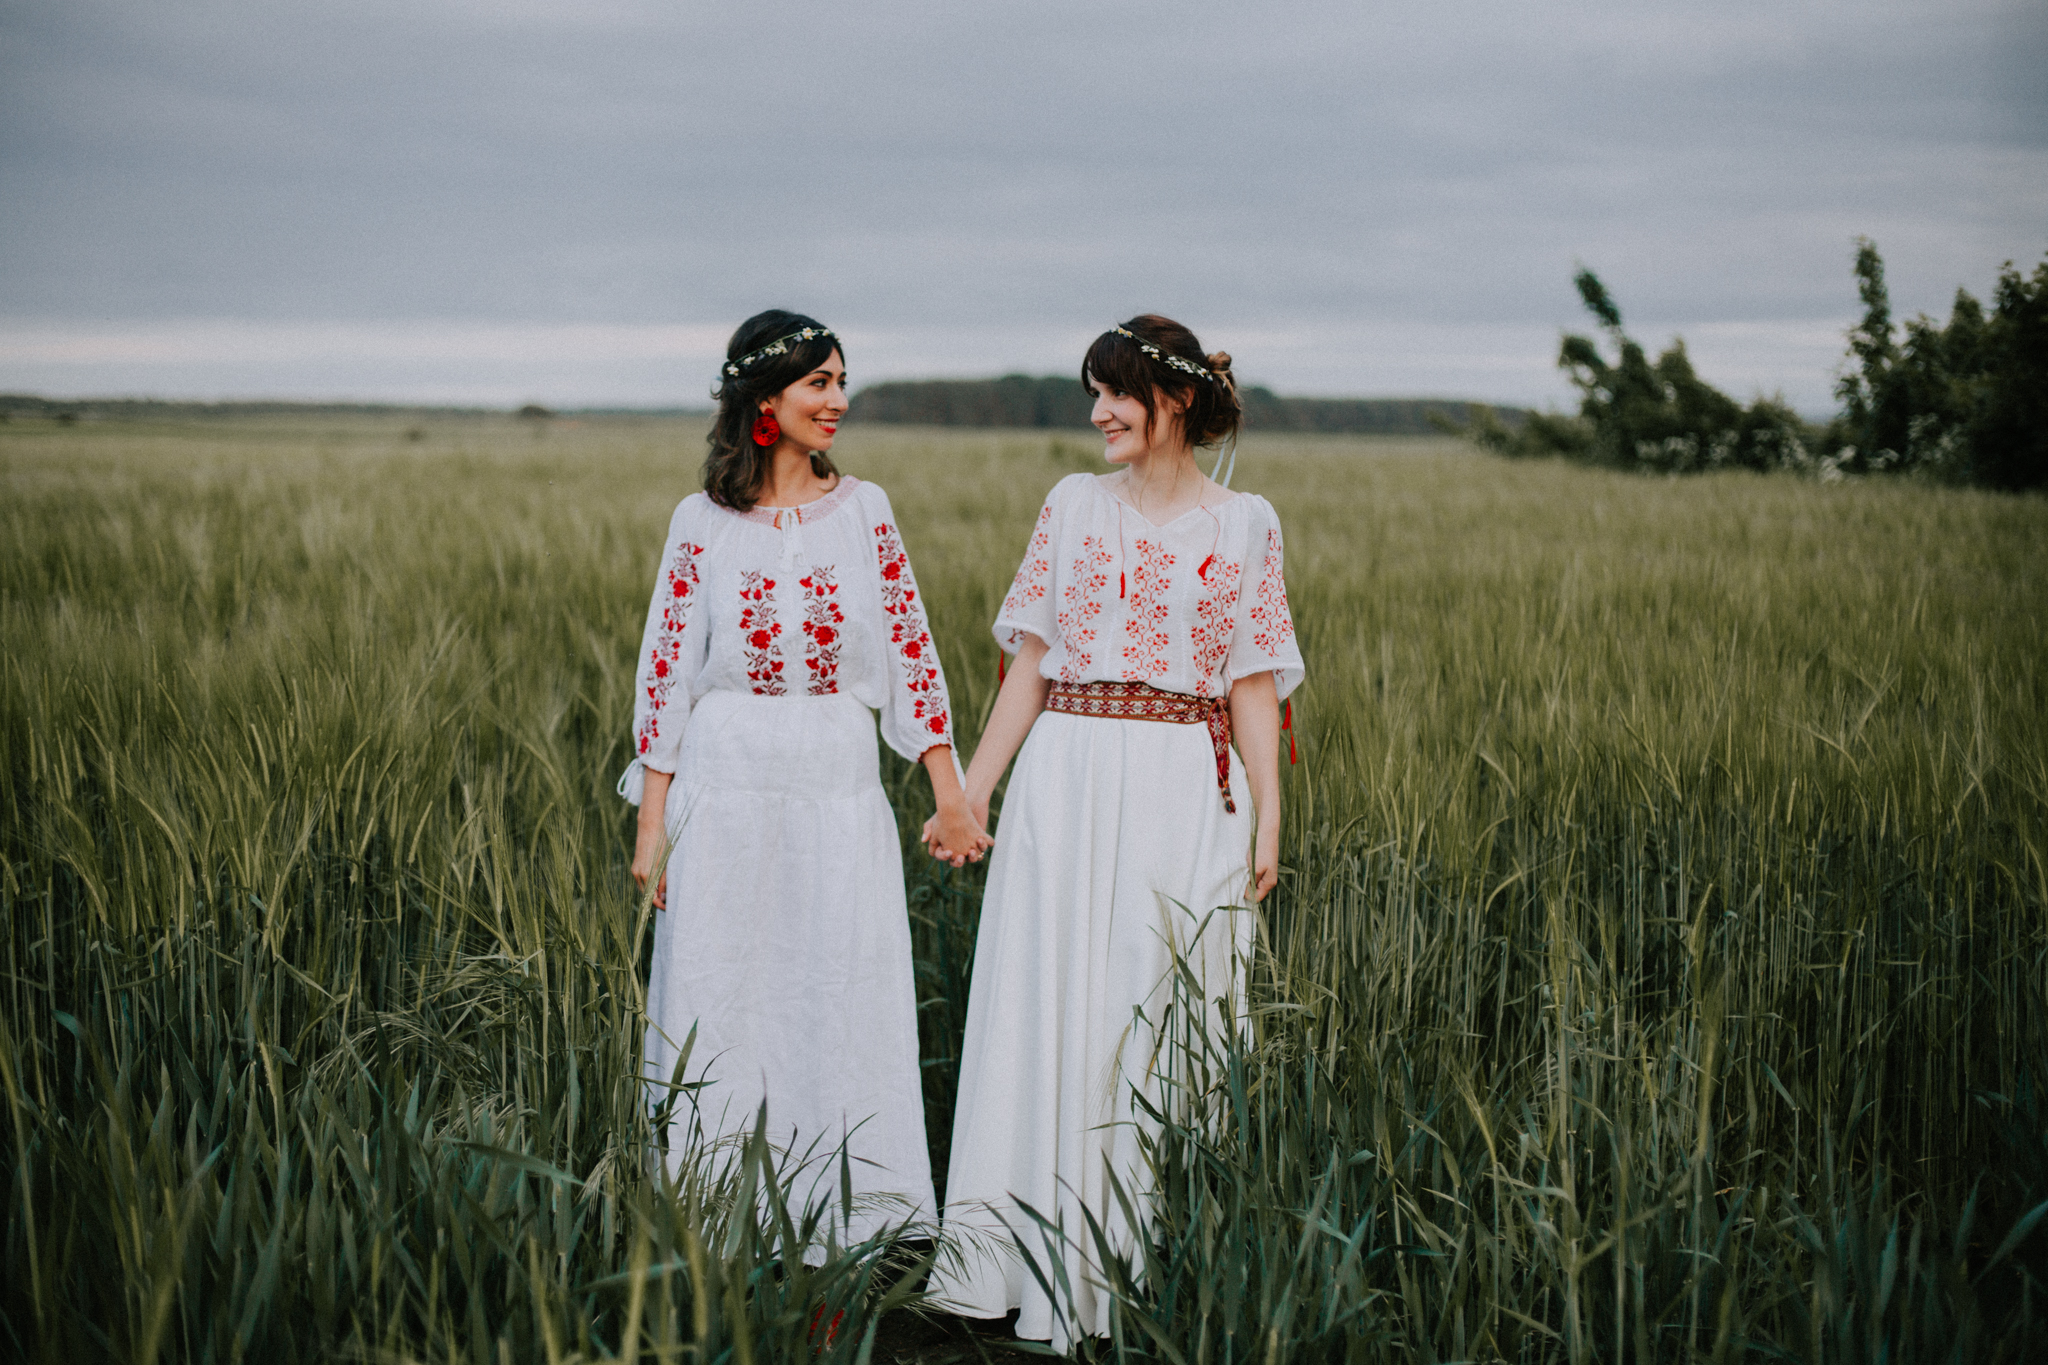 The bride and the maid of honour in the field in a Romanian traditional outfit